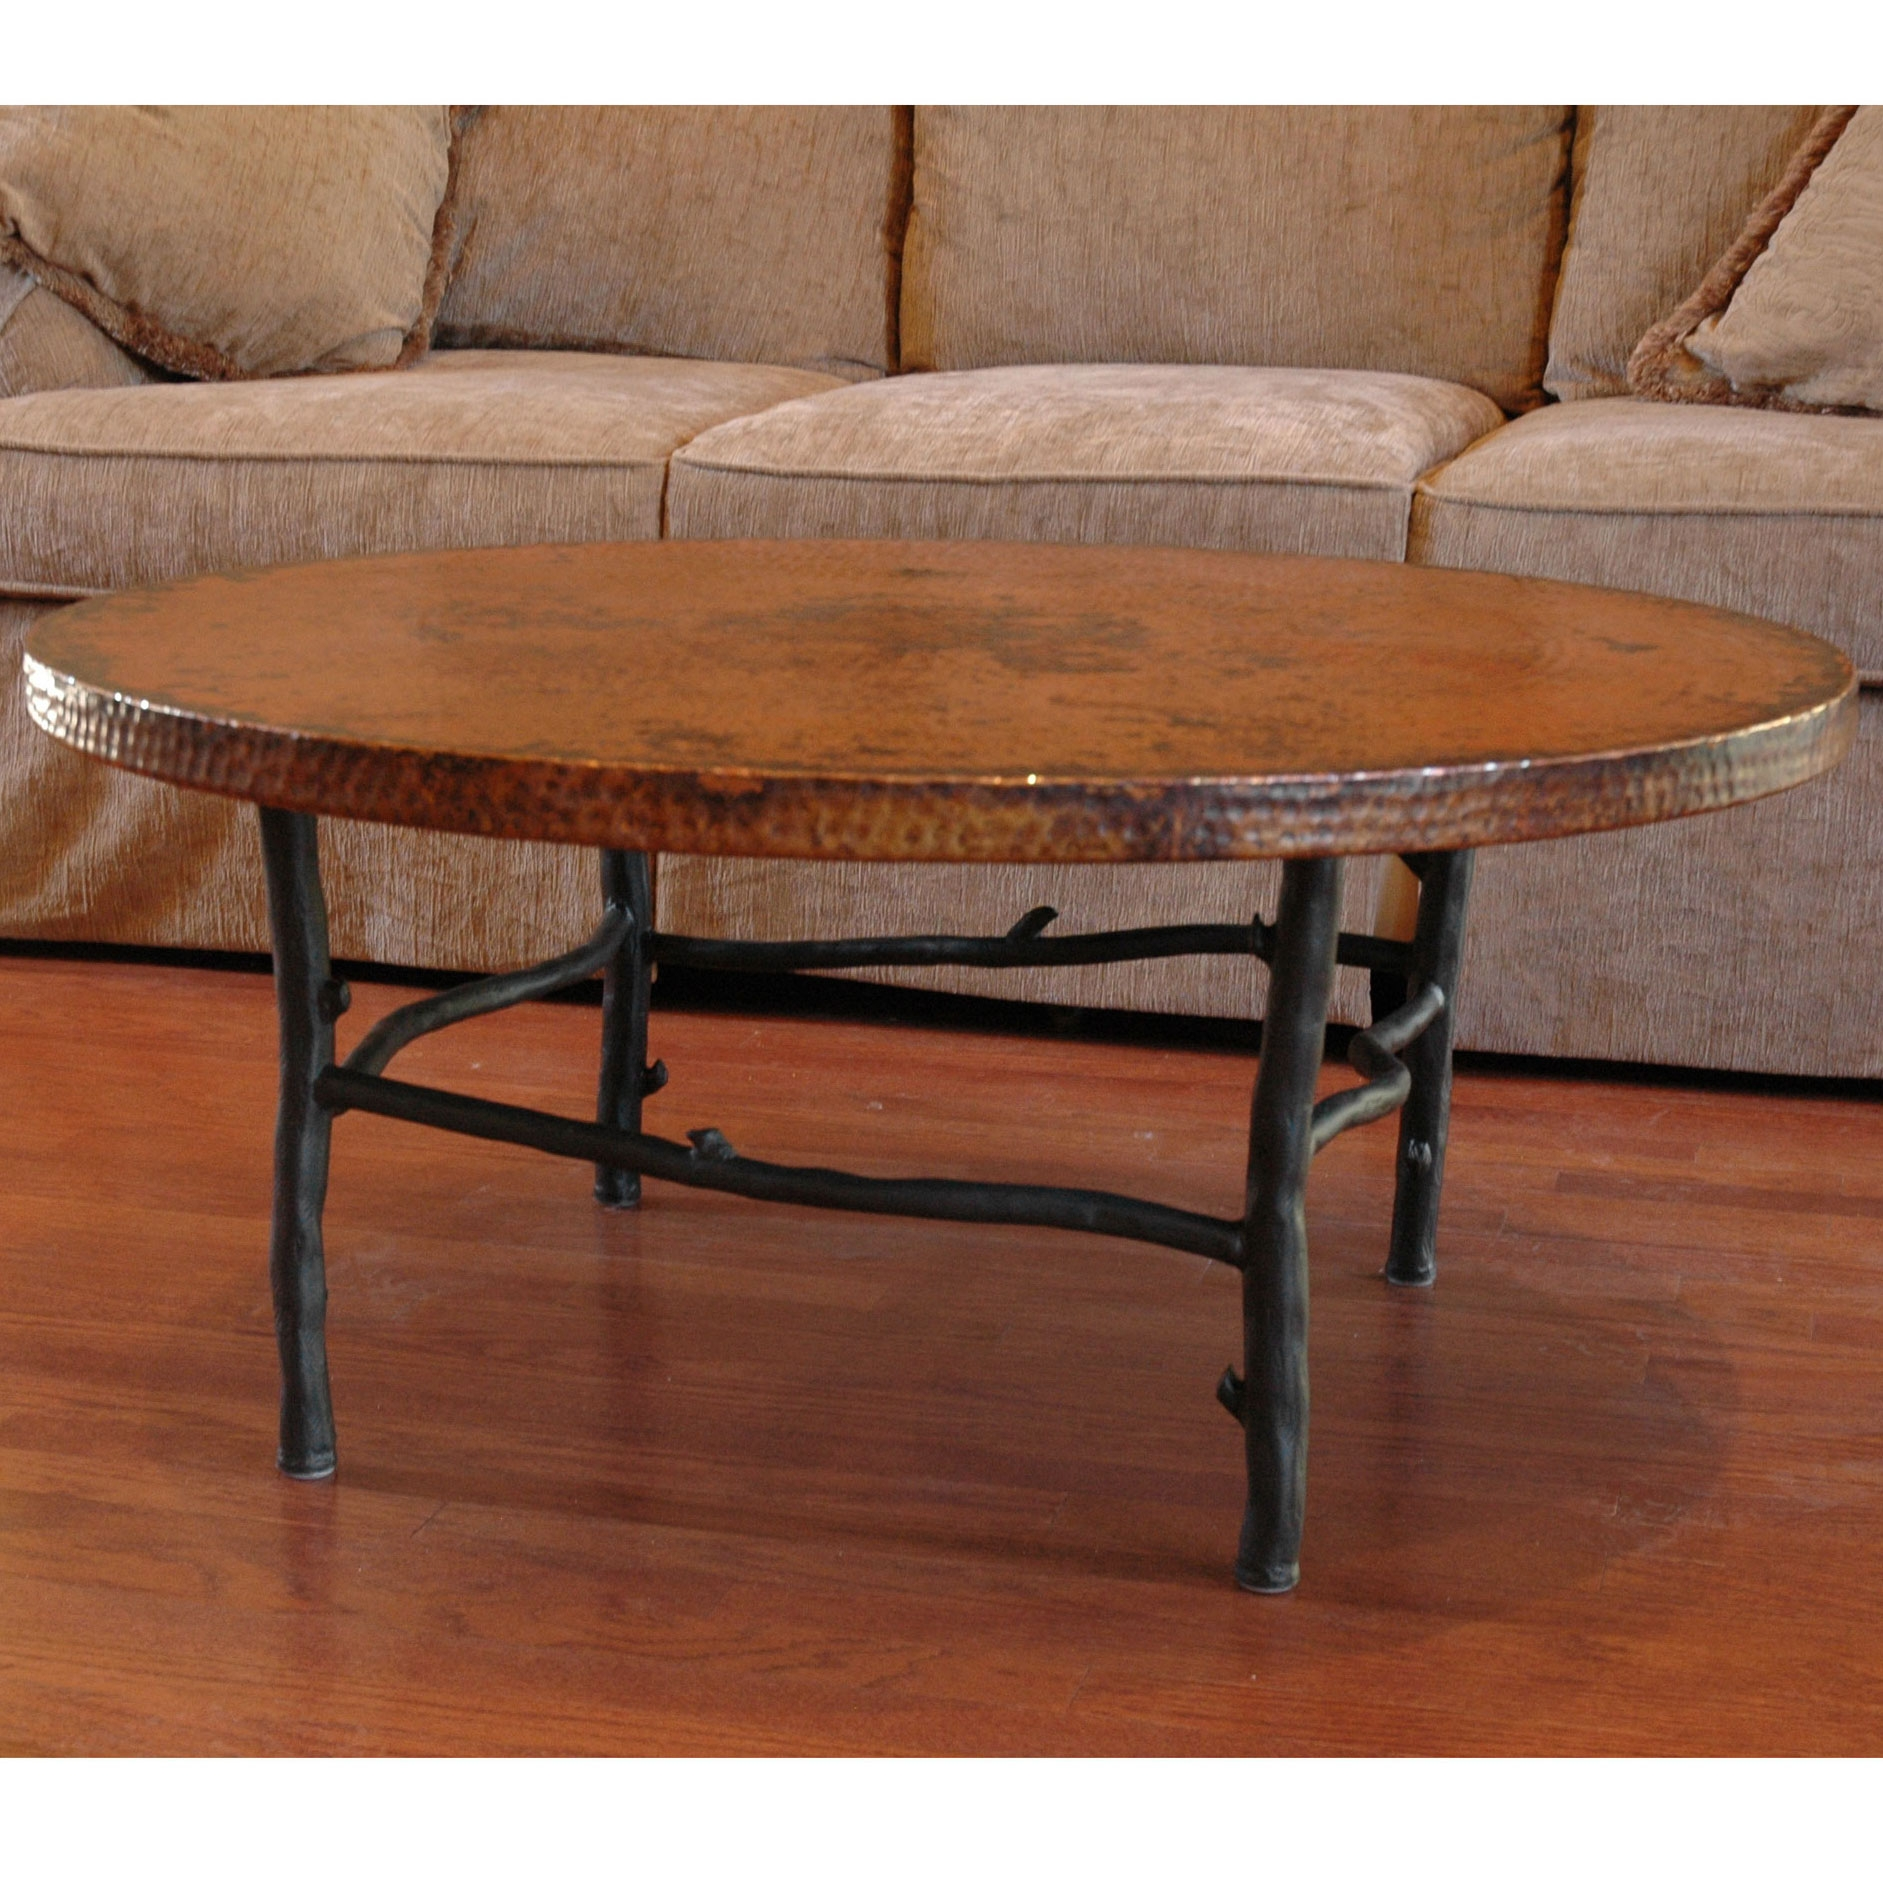 Rustic south fork wrought iron coffee table 42inches round pictured here is the south fork wrought iron coffee table with a 42inch round copper top geotapseo Image collections